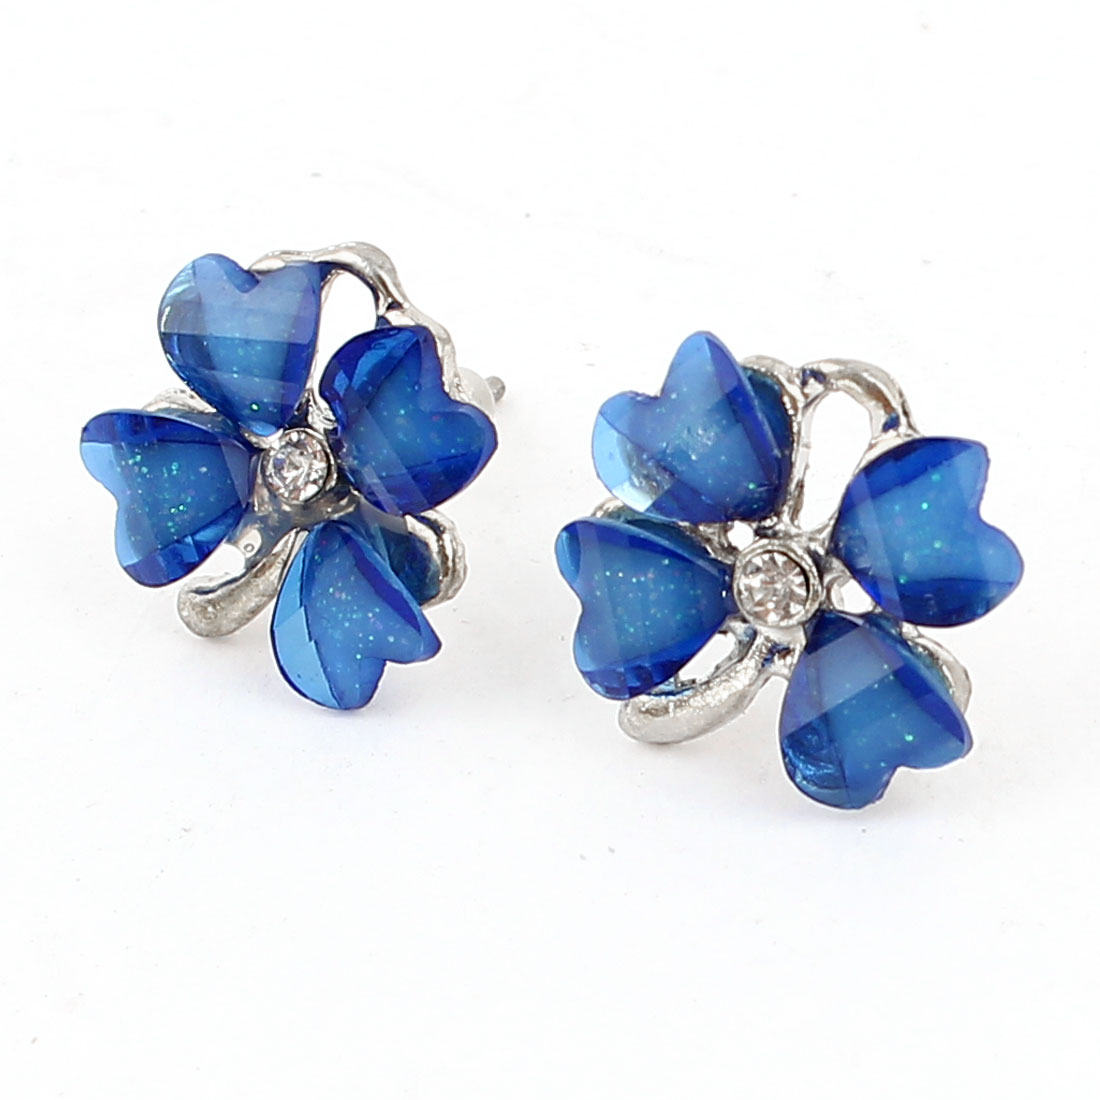 Unique Bargains Lady Rhinestone Inlaid Plastic Flower Shaped Stud Earrings Blue Pair